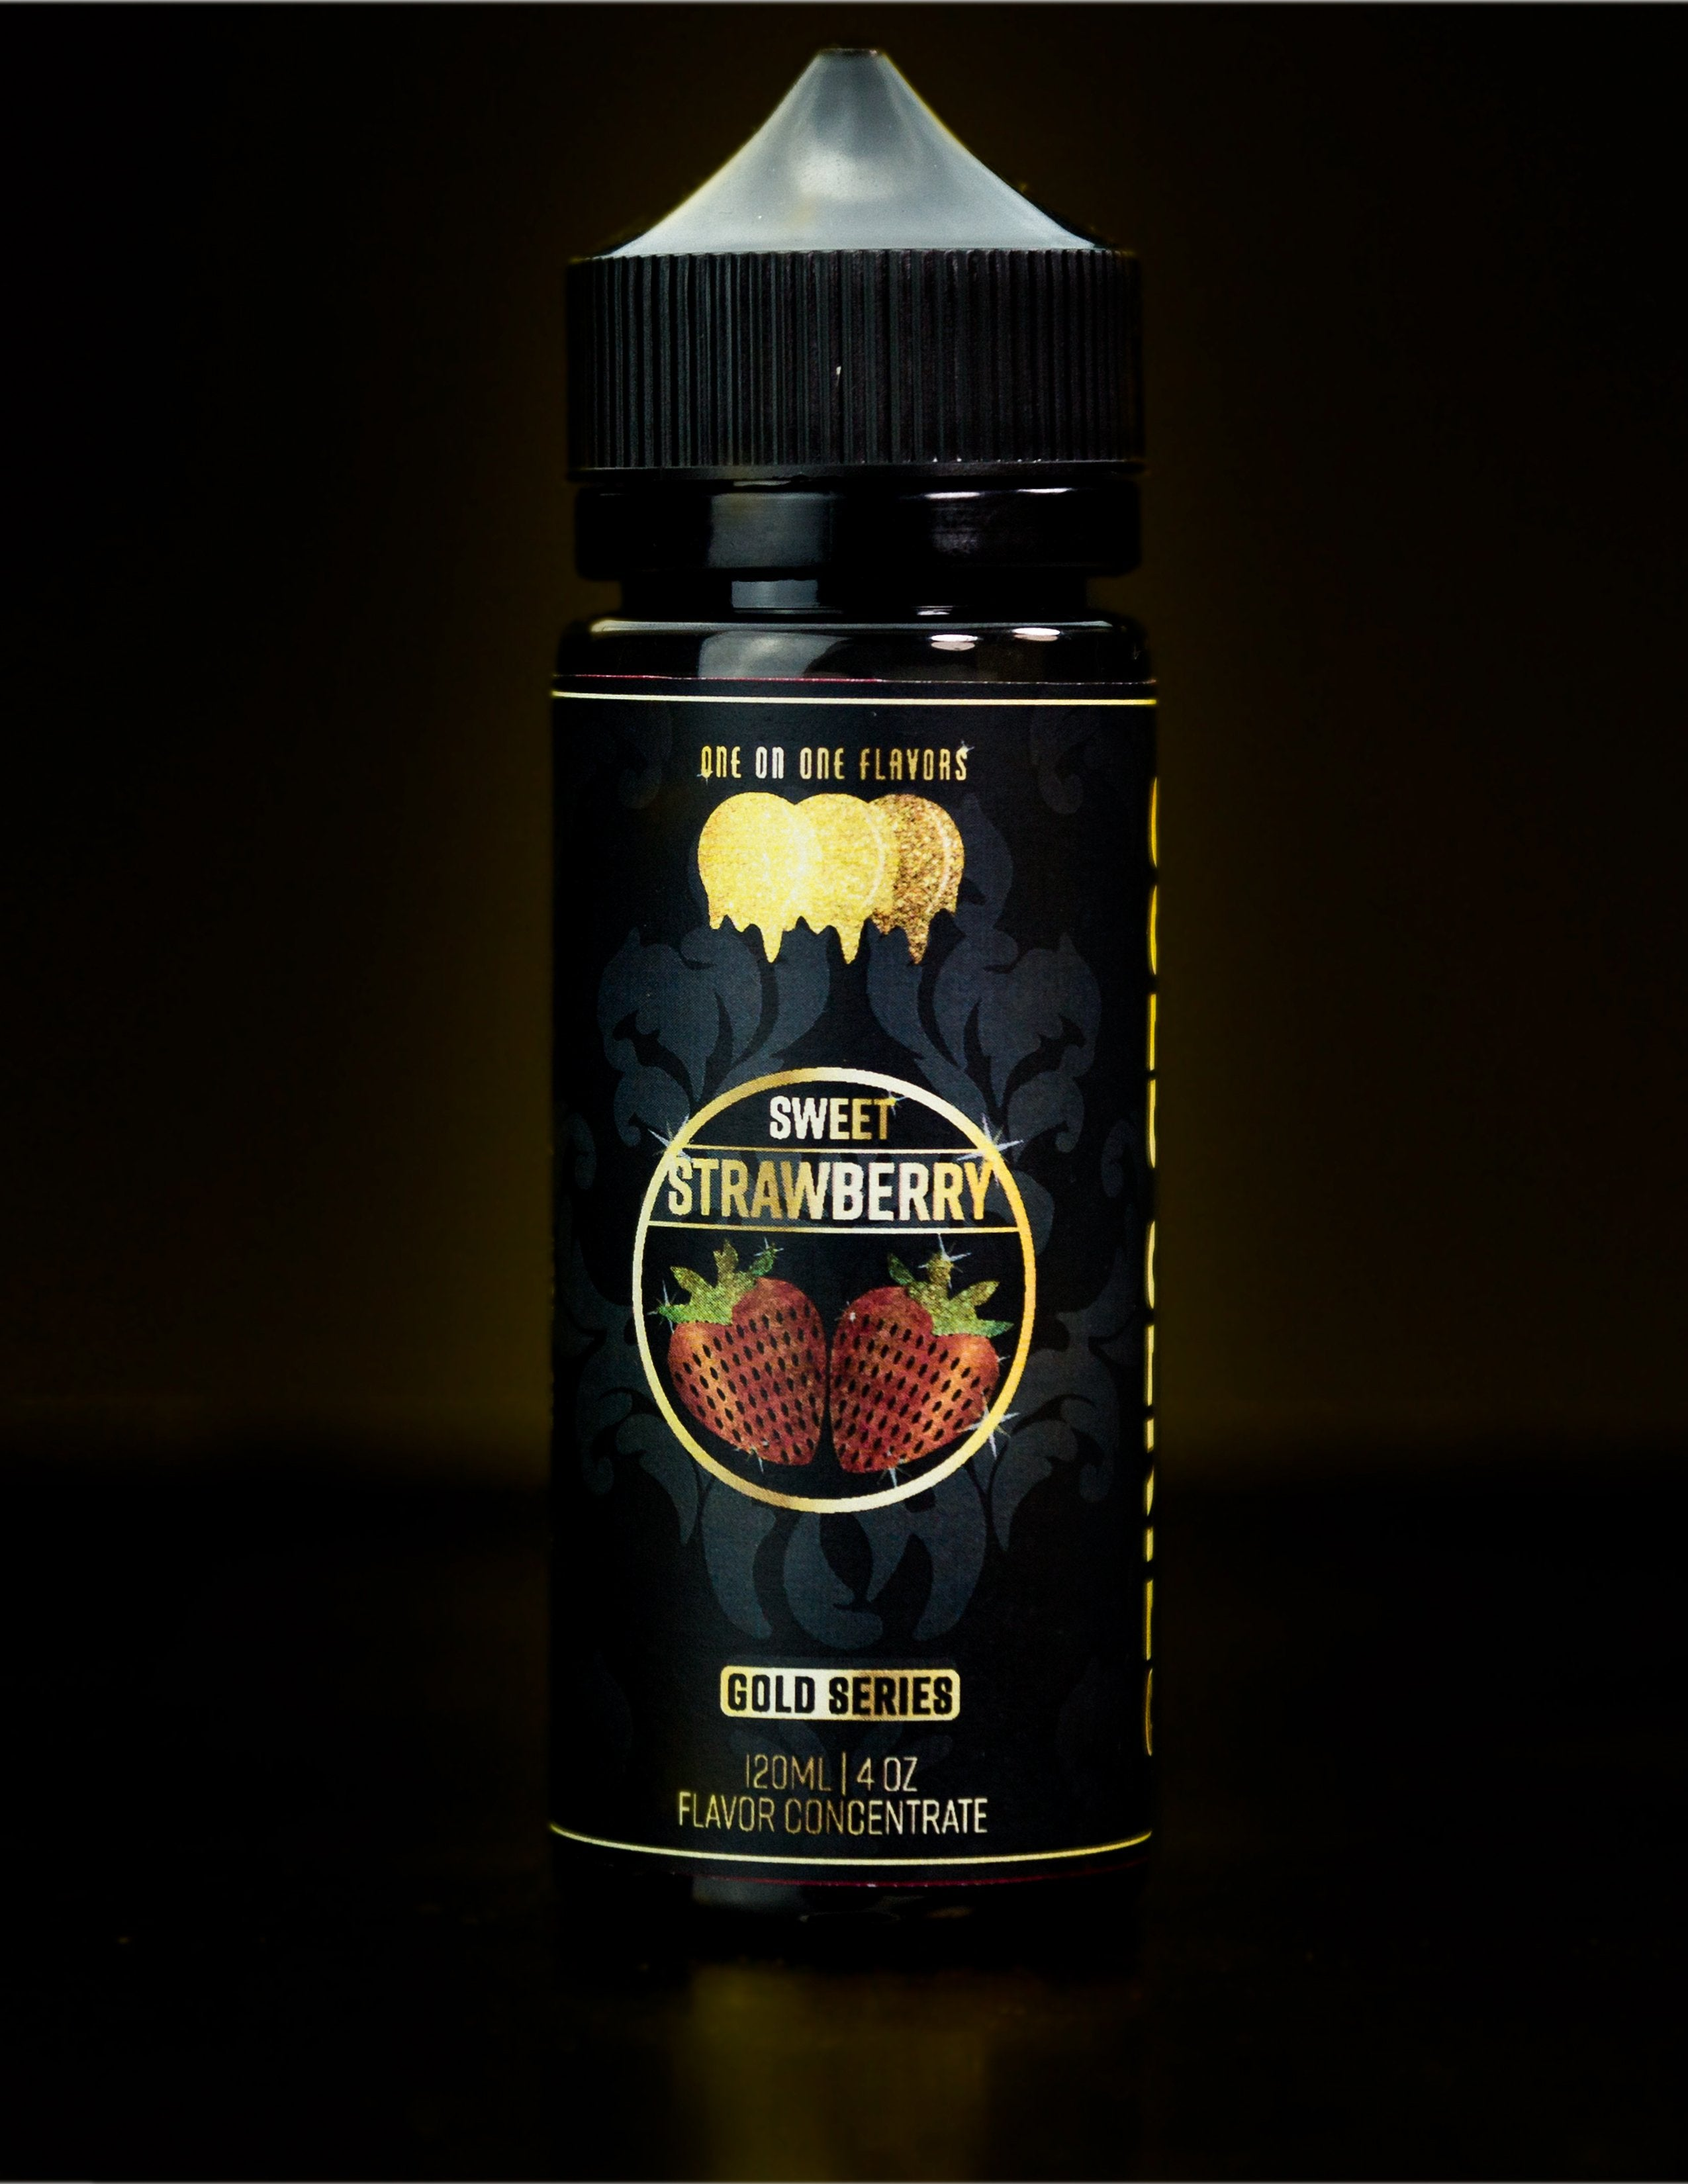 Gold Series - Sweetened Strawberry Flavored Liquid Concentrate